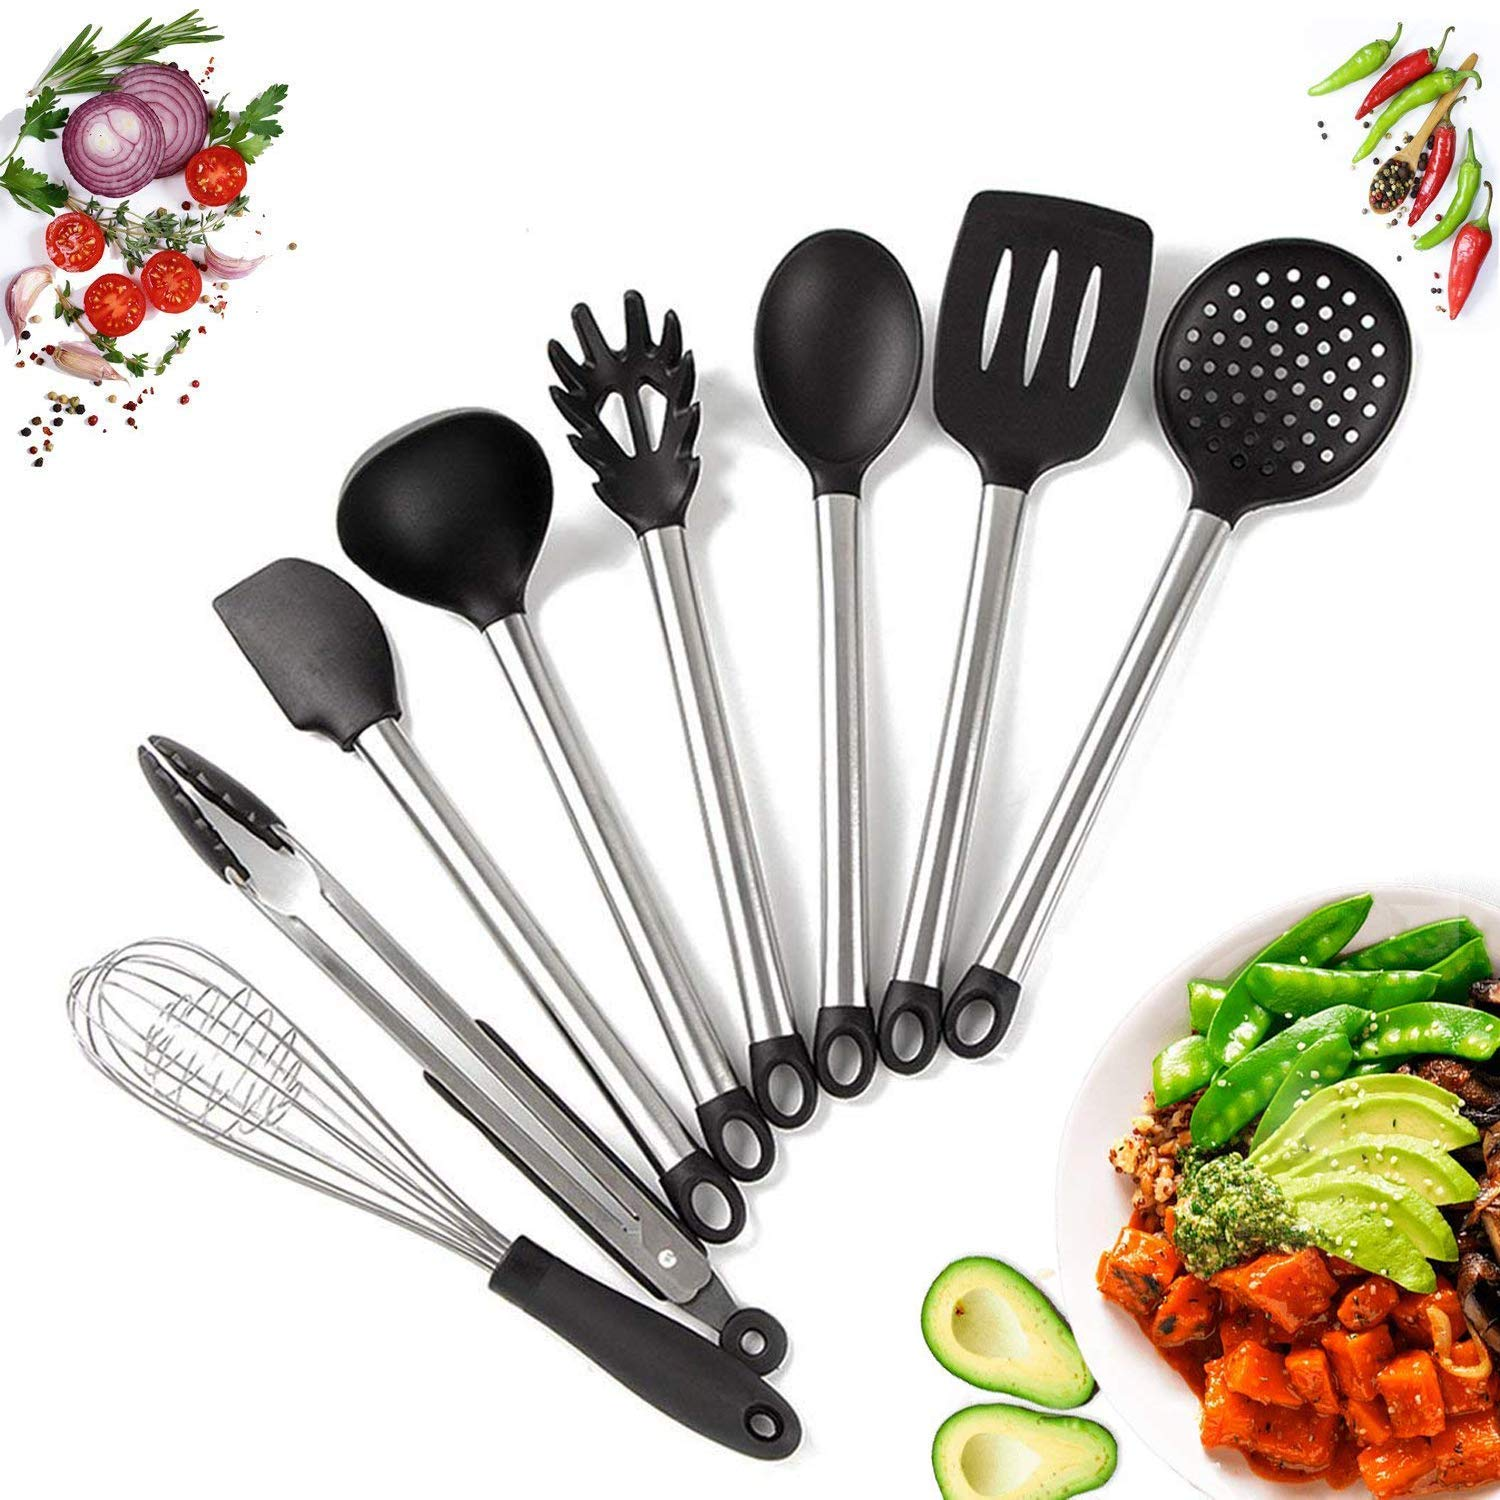 StarPack Home Silicone Kitchen Utensil Set with 101 Cooking Tips, Standard, 10.6-Inch (5 Piece Set) - Gray/Black